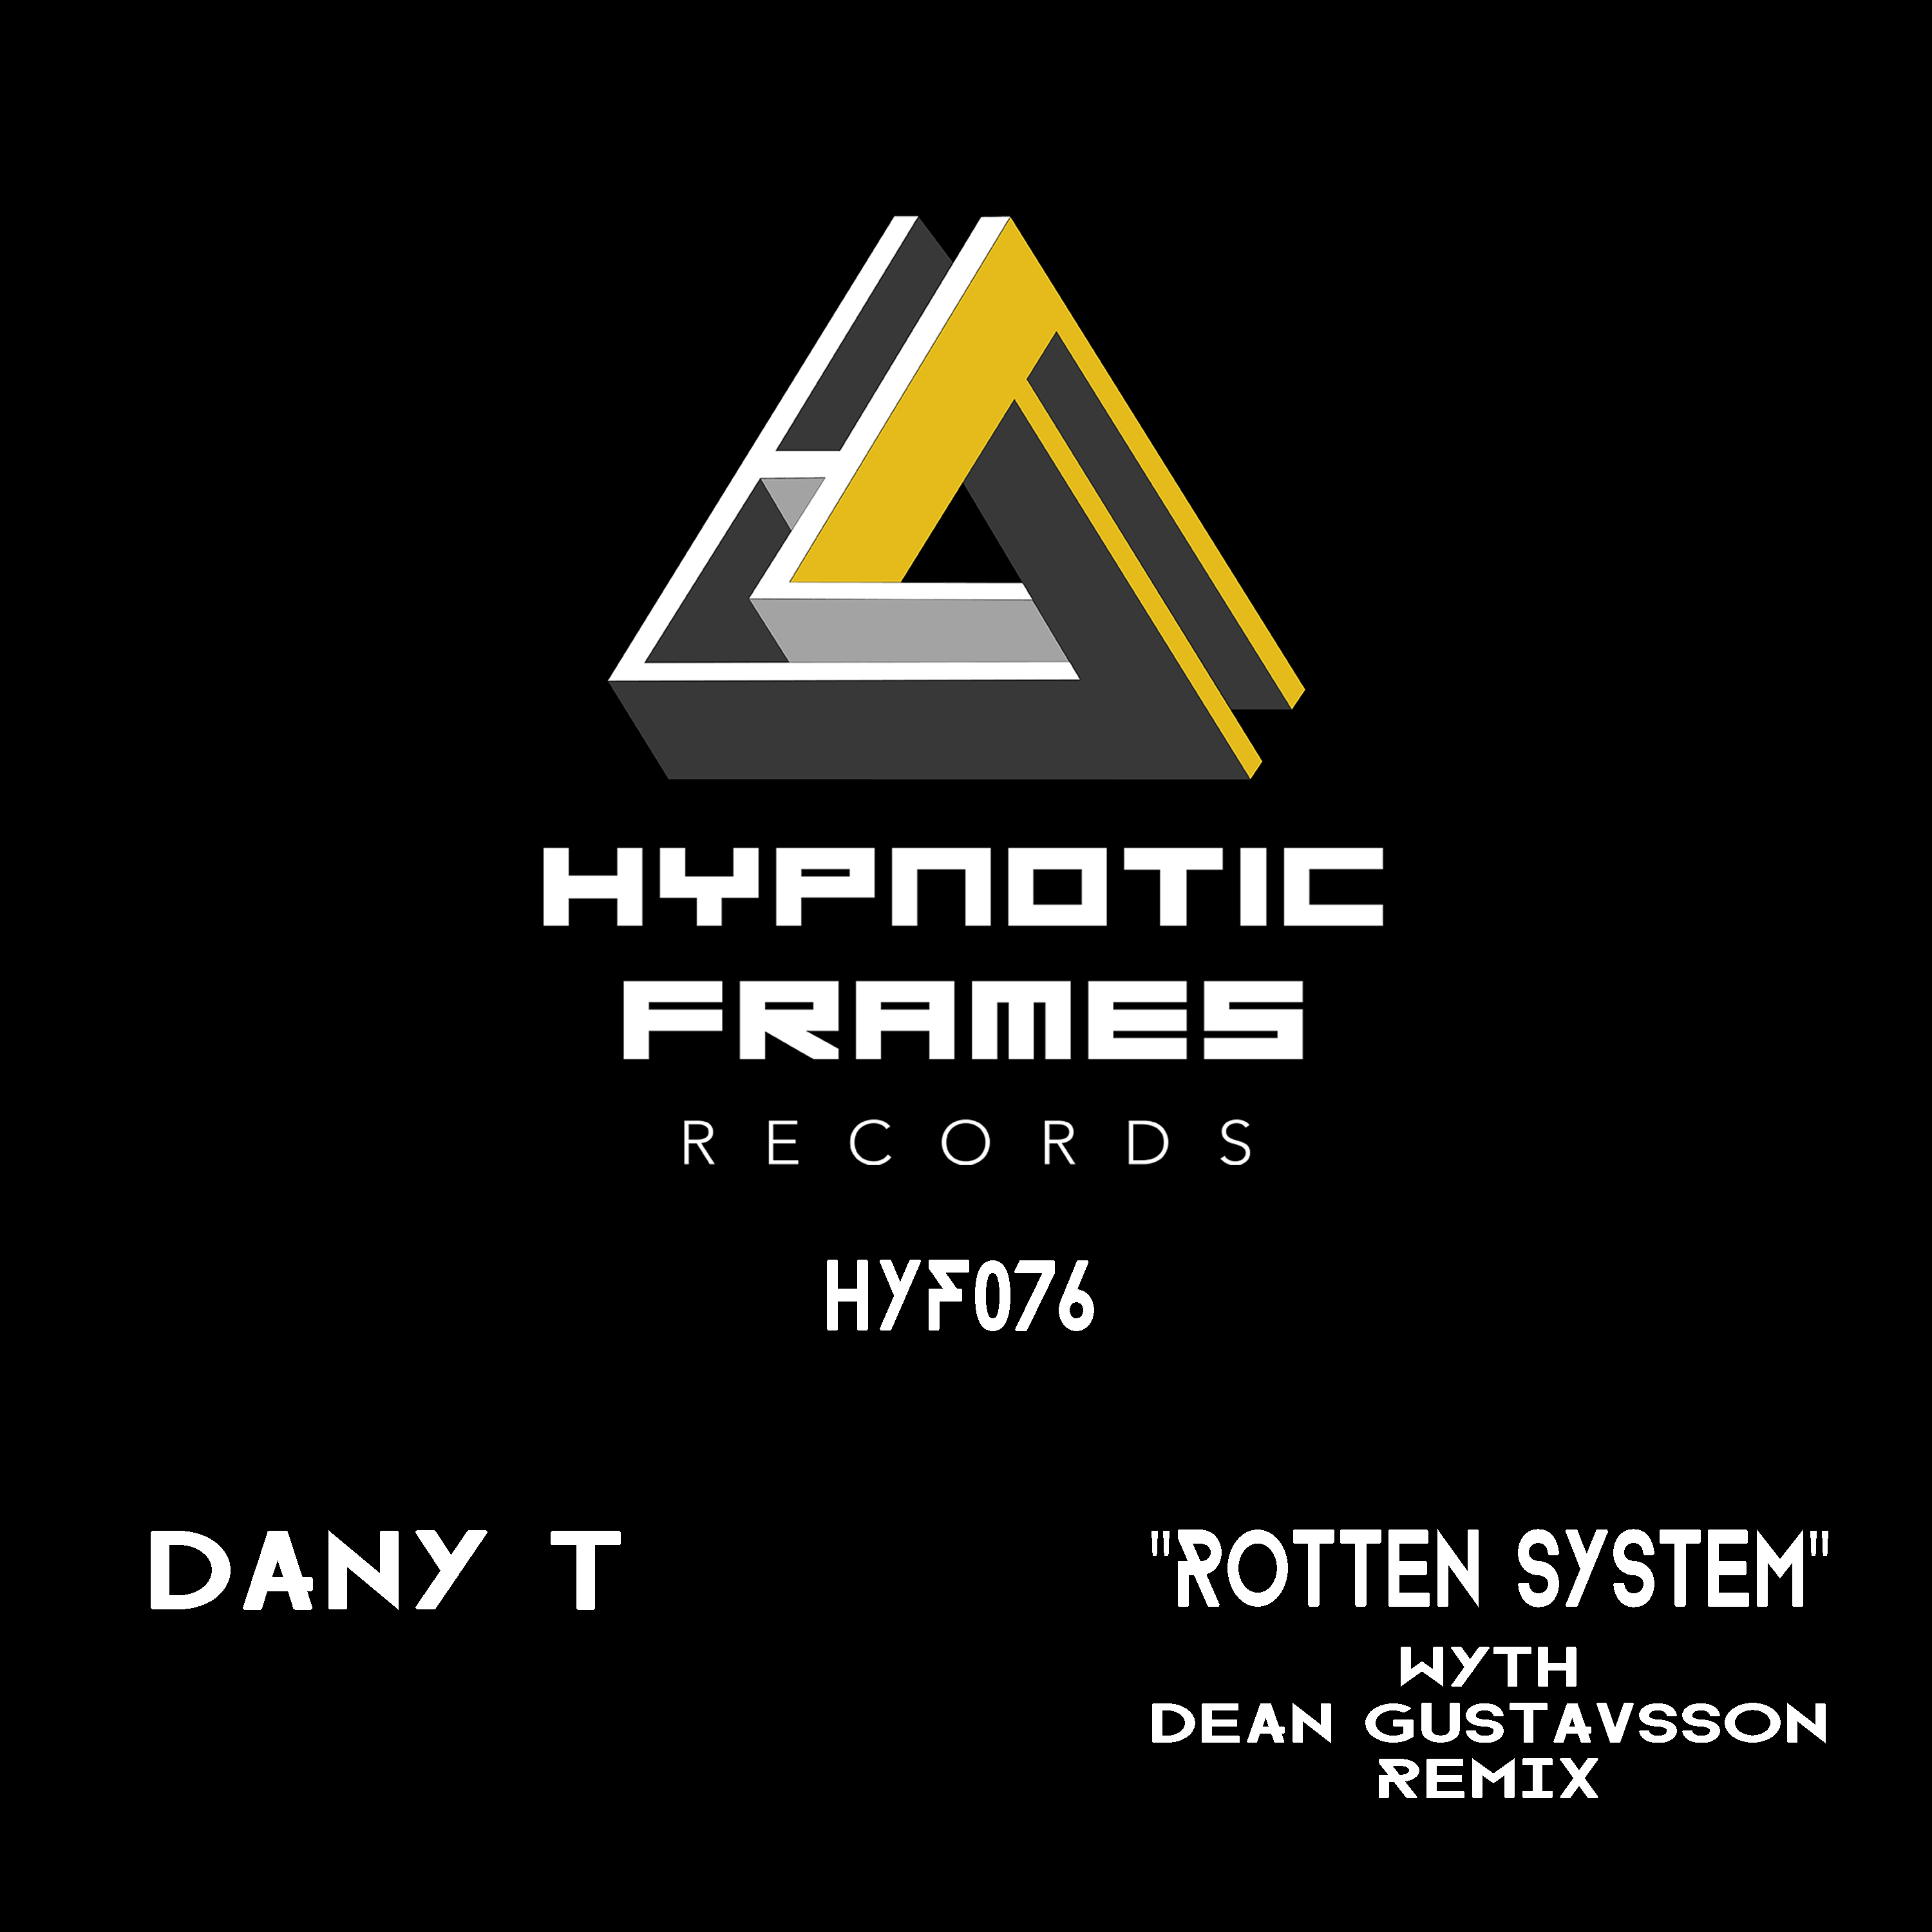 Dany T - Rotten System (Dean Gustavsson remix)